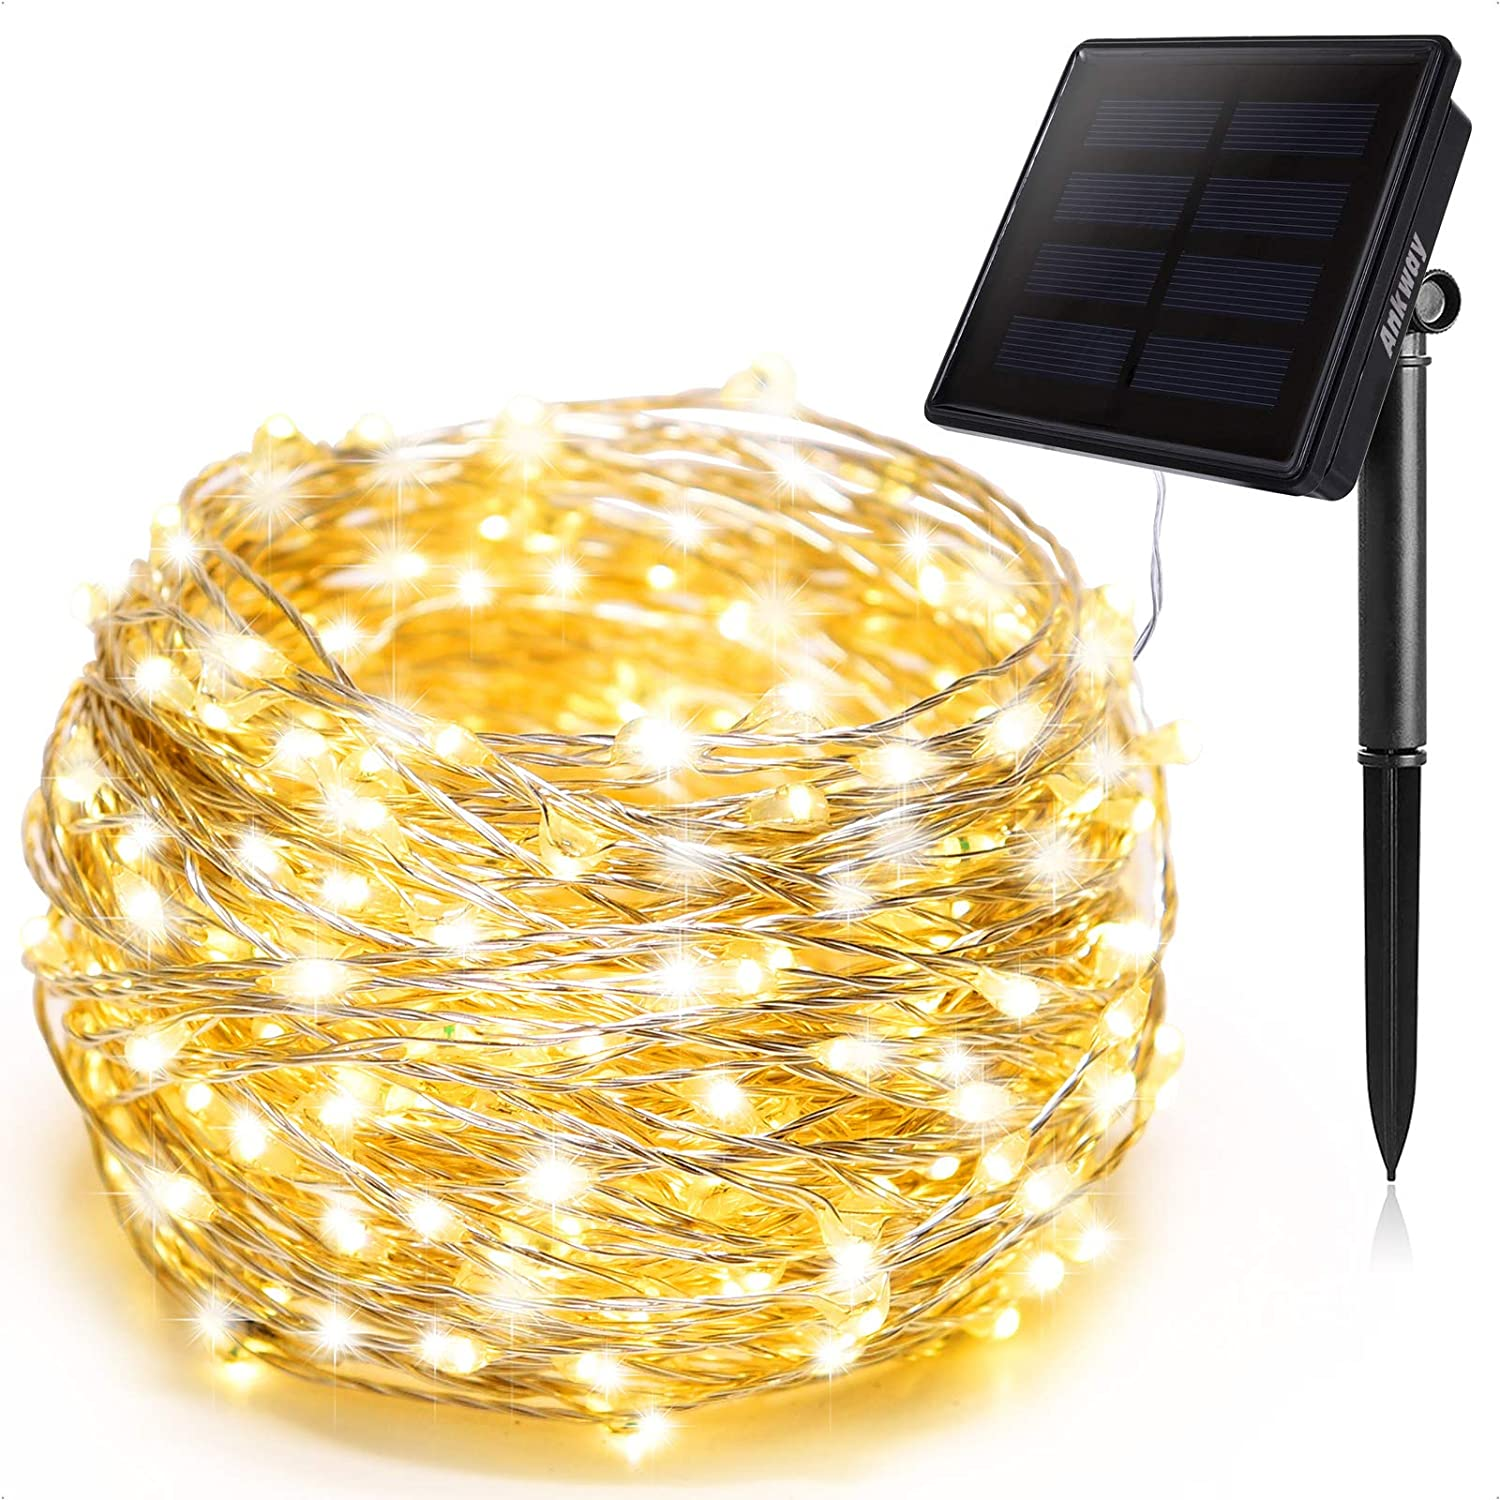 Solar String Lights Warm White, Ankway 200 LED Solar Powered String Lights 3-Strand 8 Modes 72 ft Waterproof IP65 Solar Fairy Lights for Outdoor Home Window Bedroom Patio Garden Tree Wedding Party